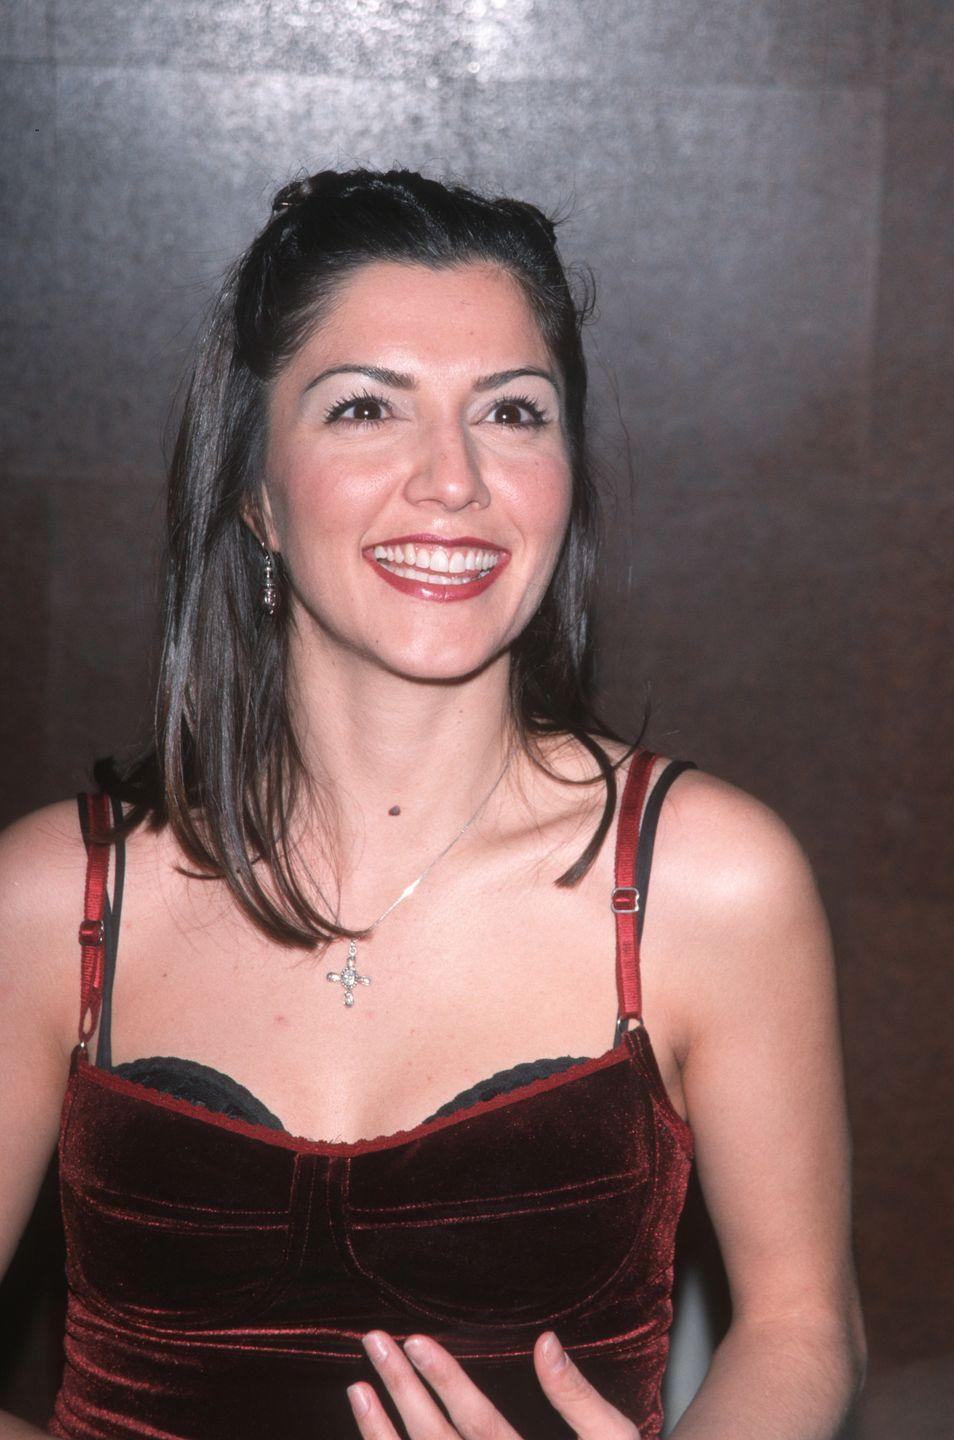 <p>Rachel Campos was on <em>The Real World</em>: <em>San Francisco</em> in 1994, the third season of the show, and later returned to reality TV for <em>Road Rules: All Stars </em>in 1999. It was there that she met her husband, former <em>The Real World: Boston</em> cast member Sean Duffy. </p>